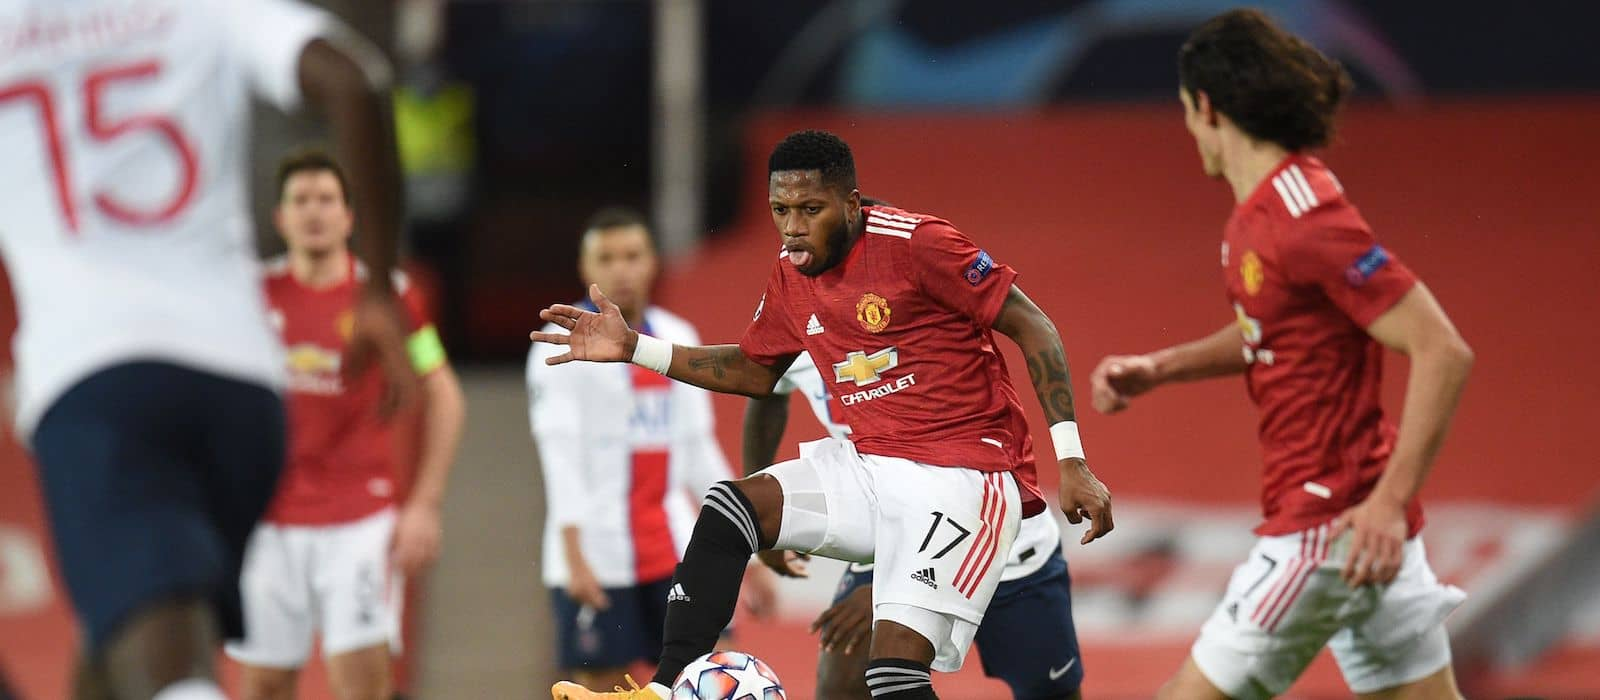 Ole Gunnar Solskjaer insists Fred did not deserve second yellow